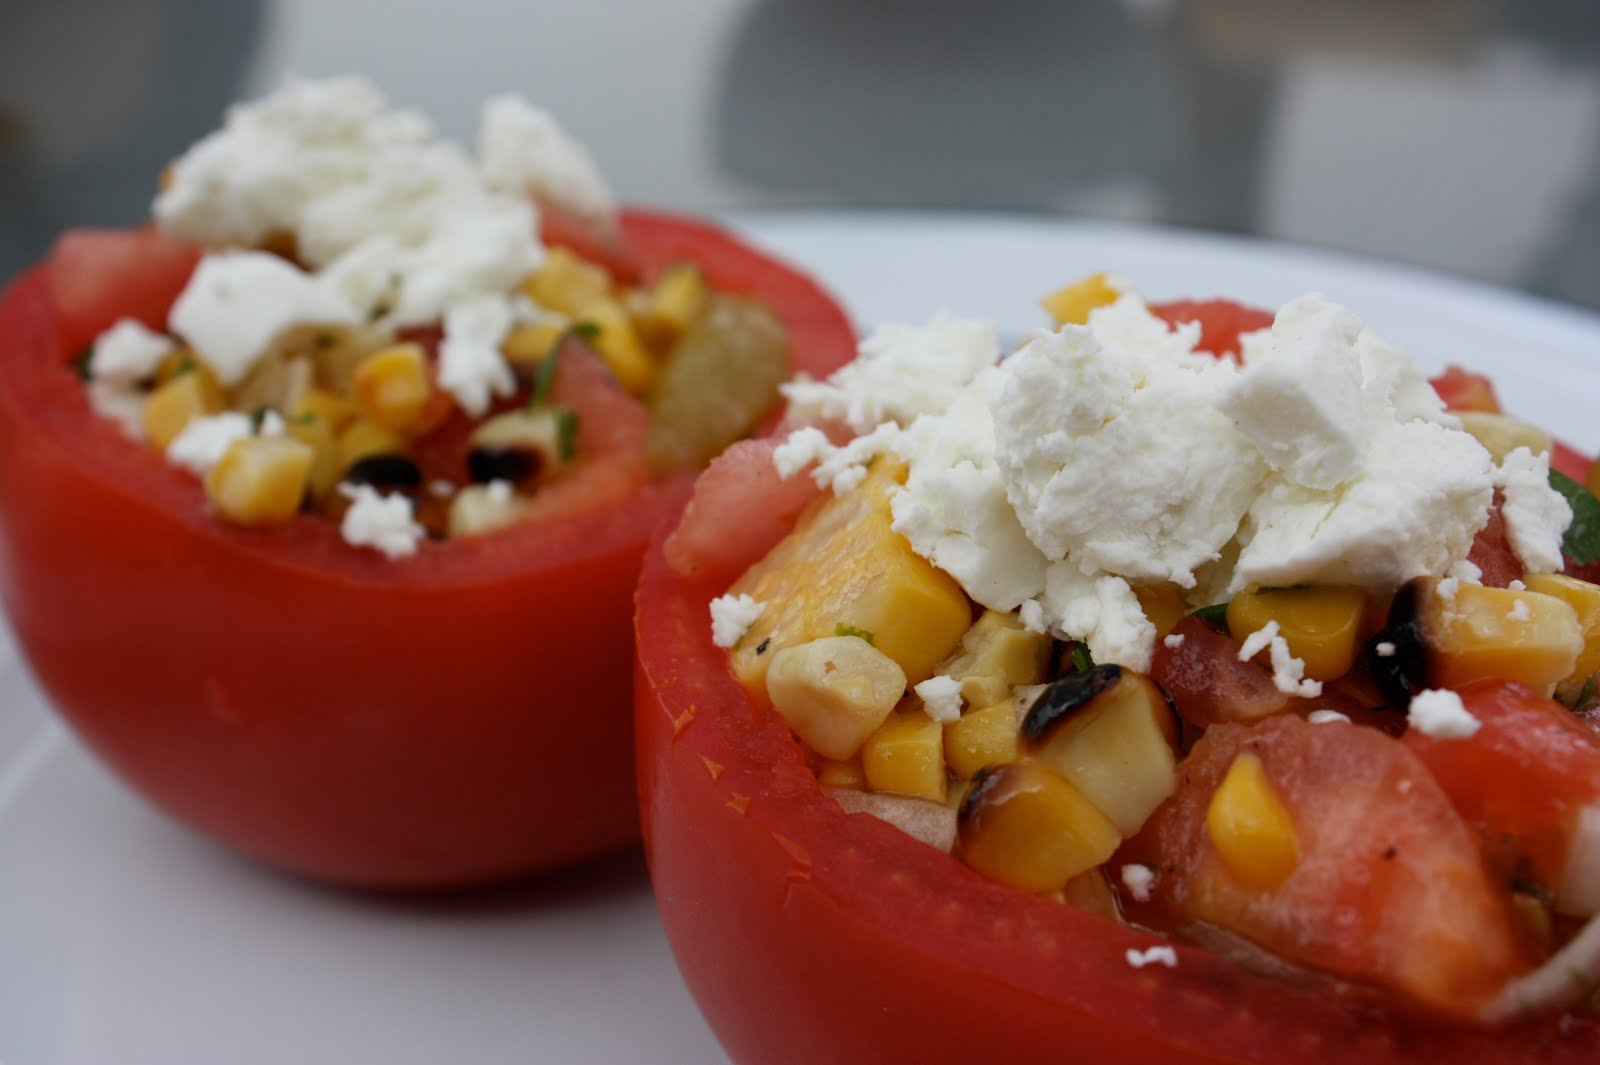 umommy: Stuffed Tomatoes with Grilled Corn